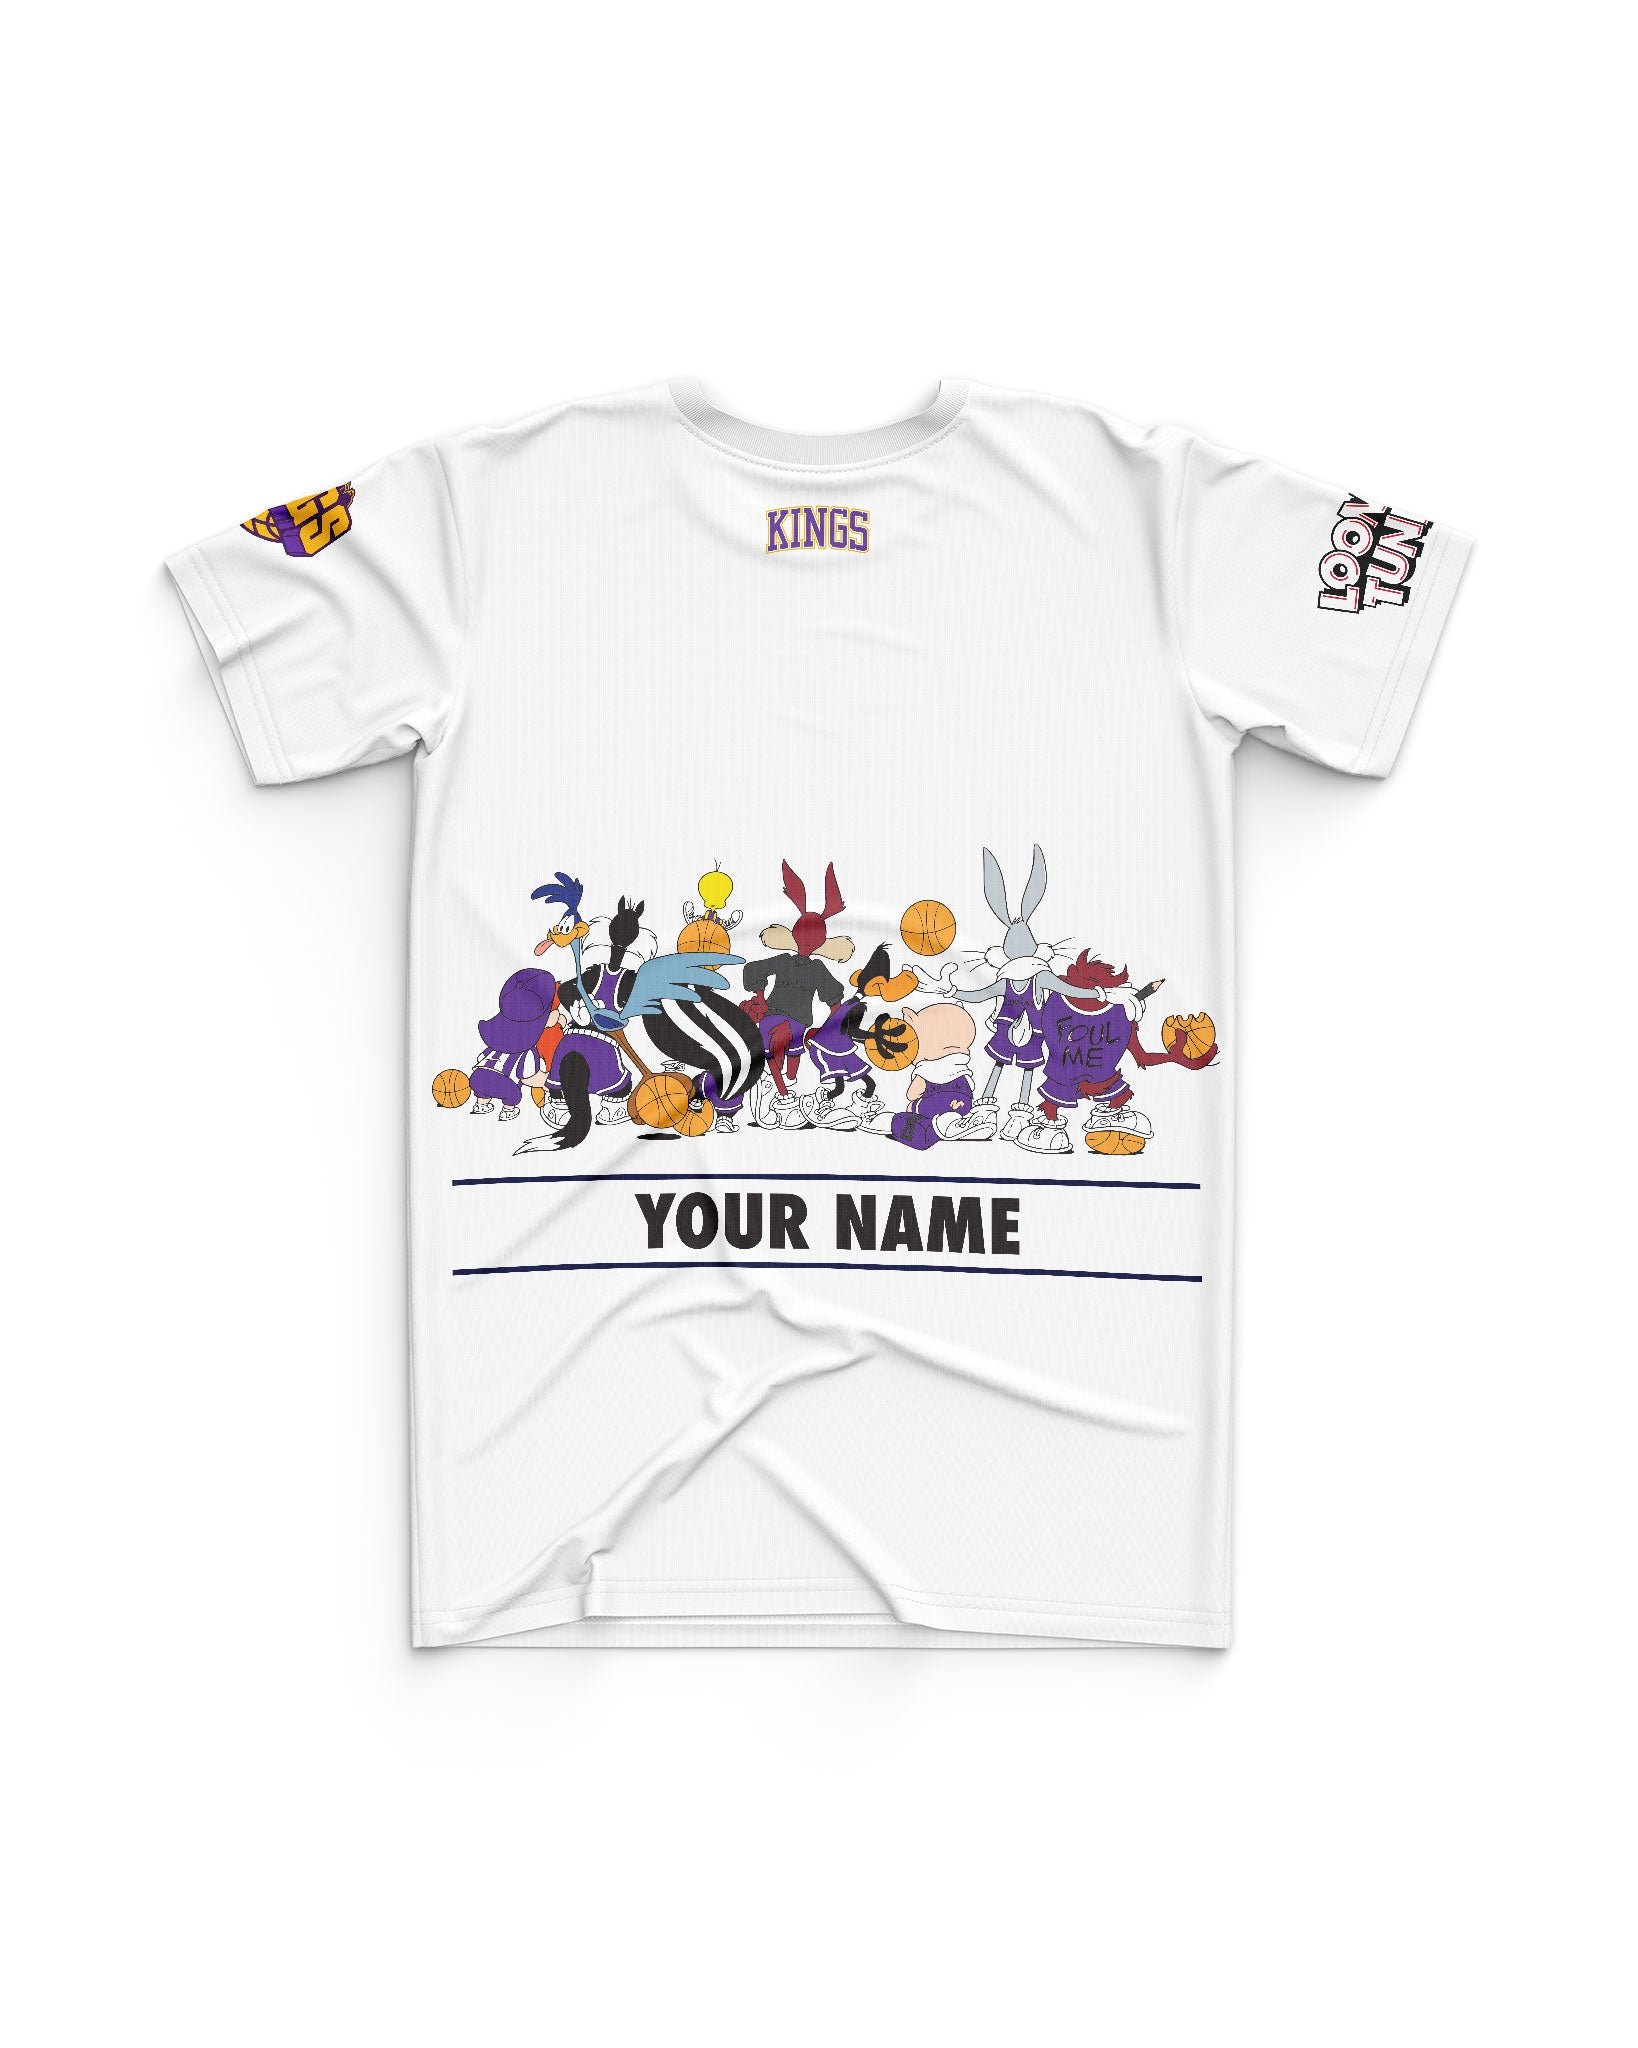 Sydney Kings 20/21 Looney Tunes Youth Squad Tee - Personalised